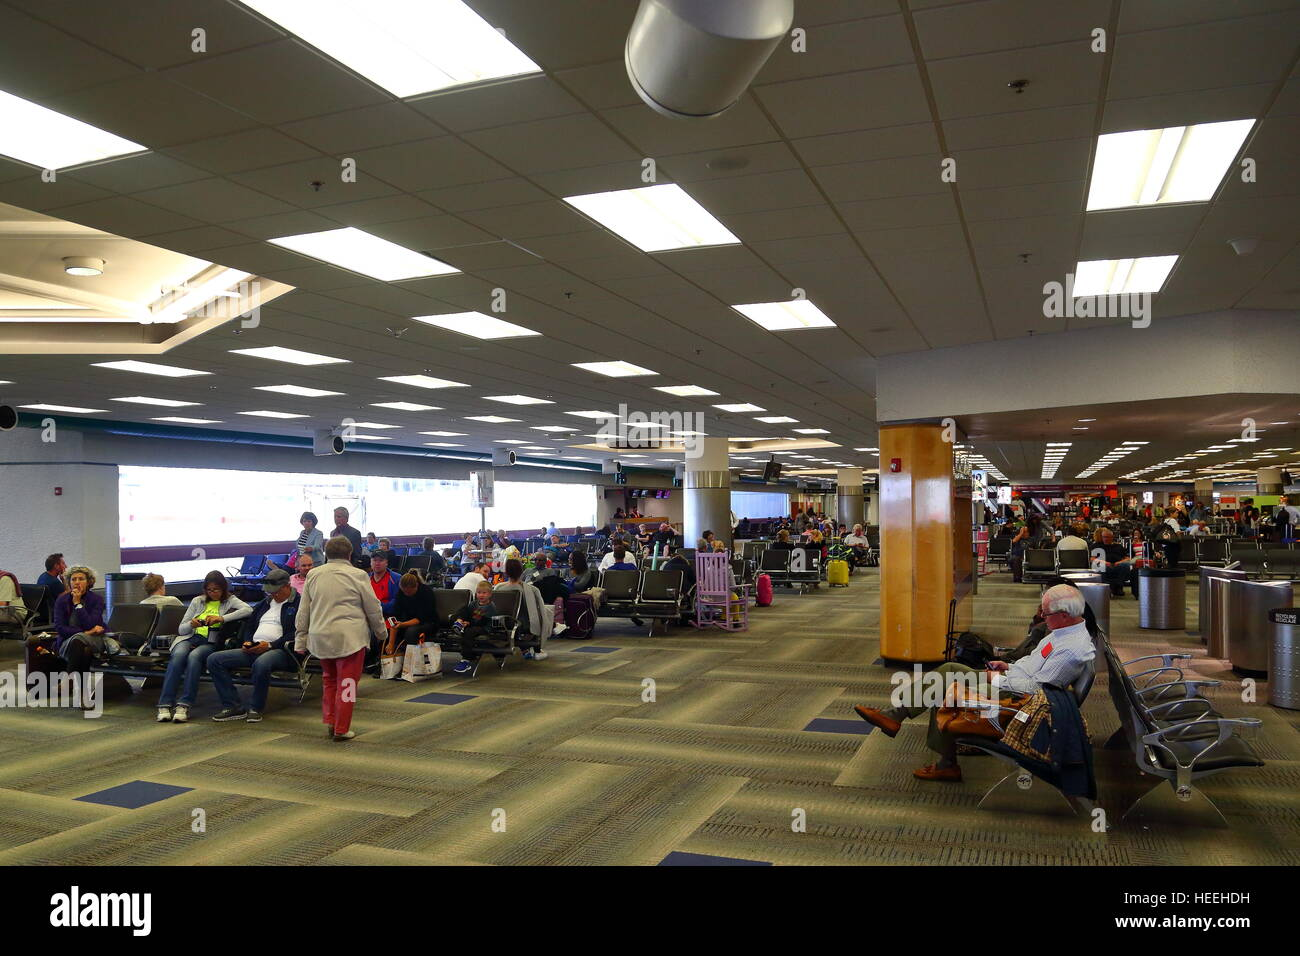 passengers waiting for their flights inside the terminal